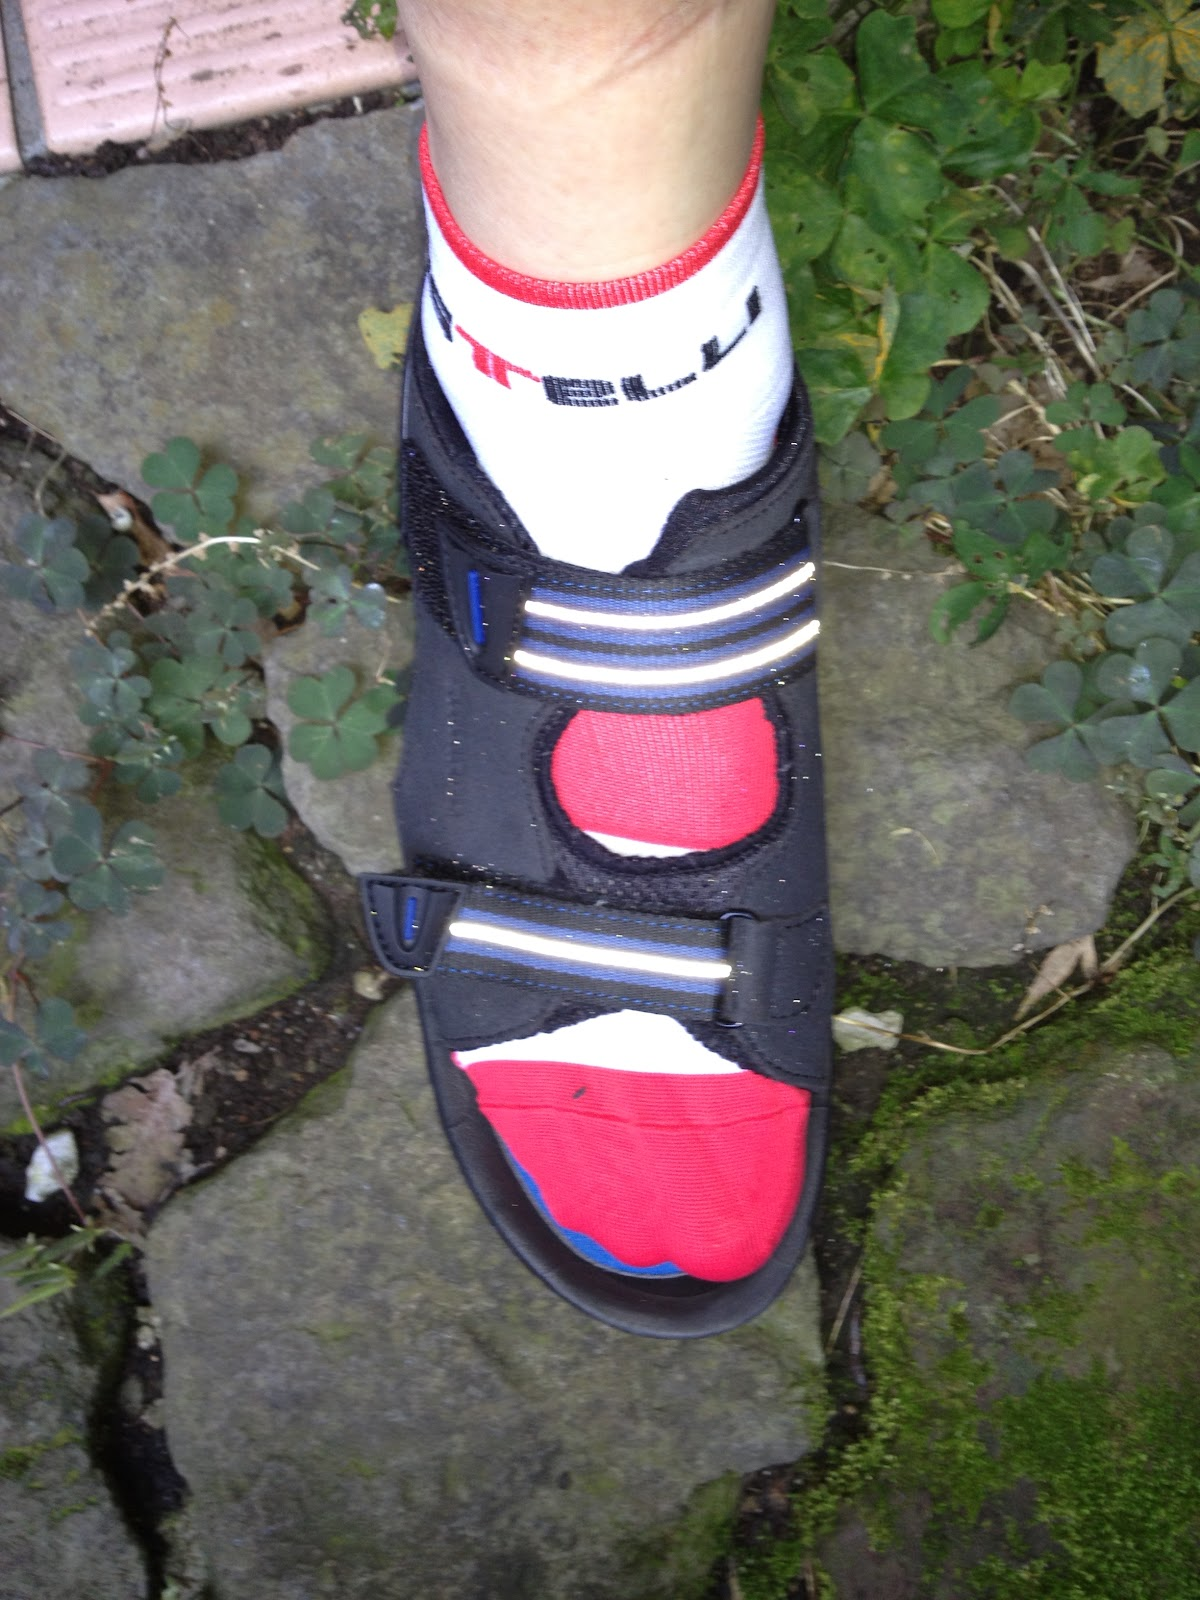 Sandals cycling shoes - I M Enjoying My New Cycling Shoes